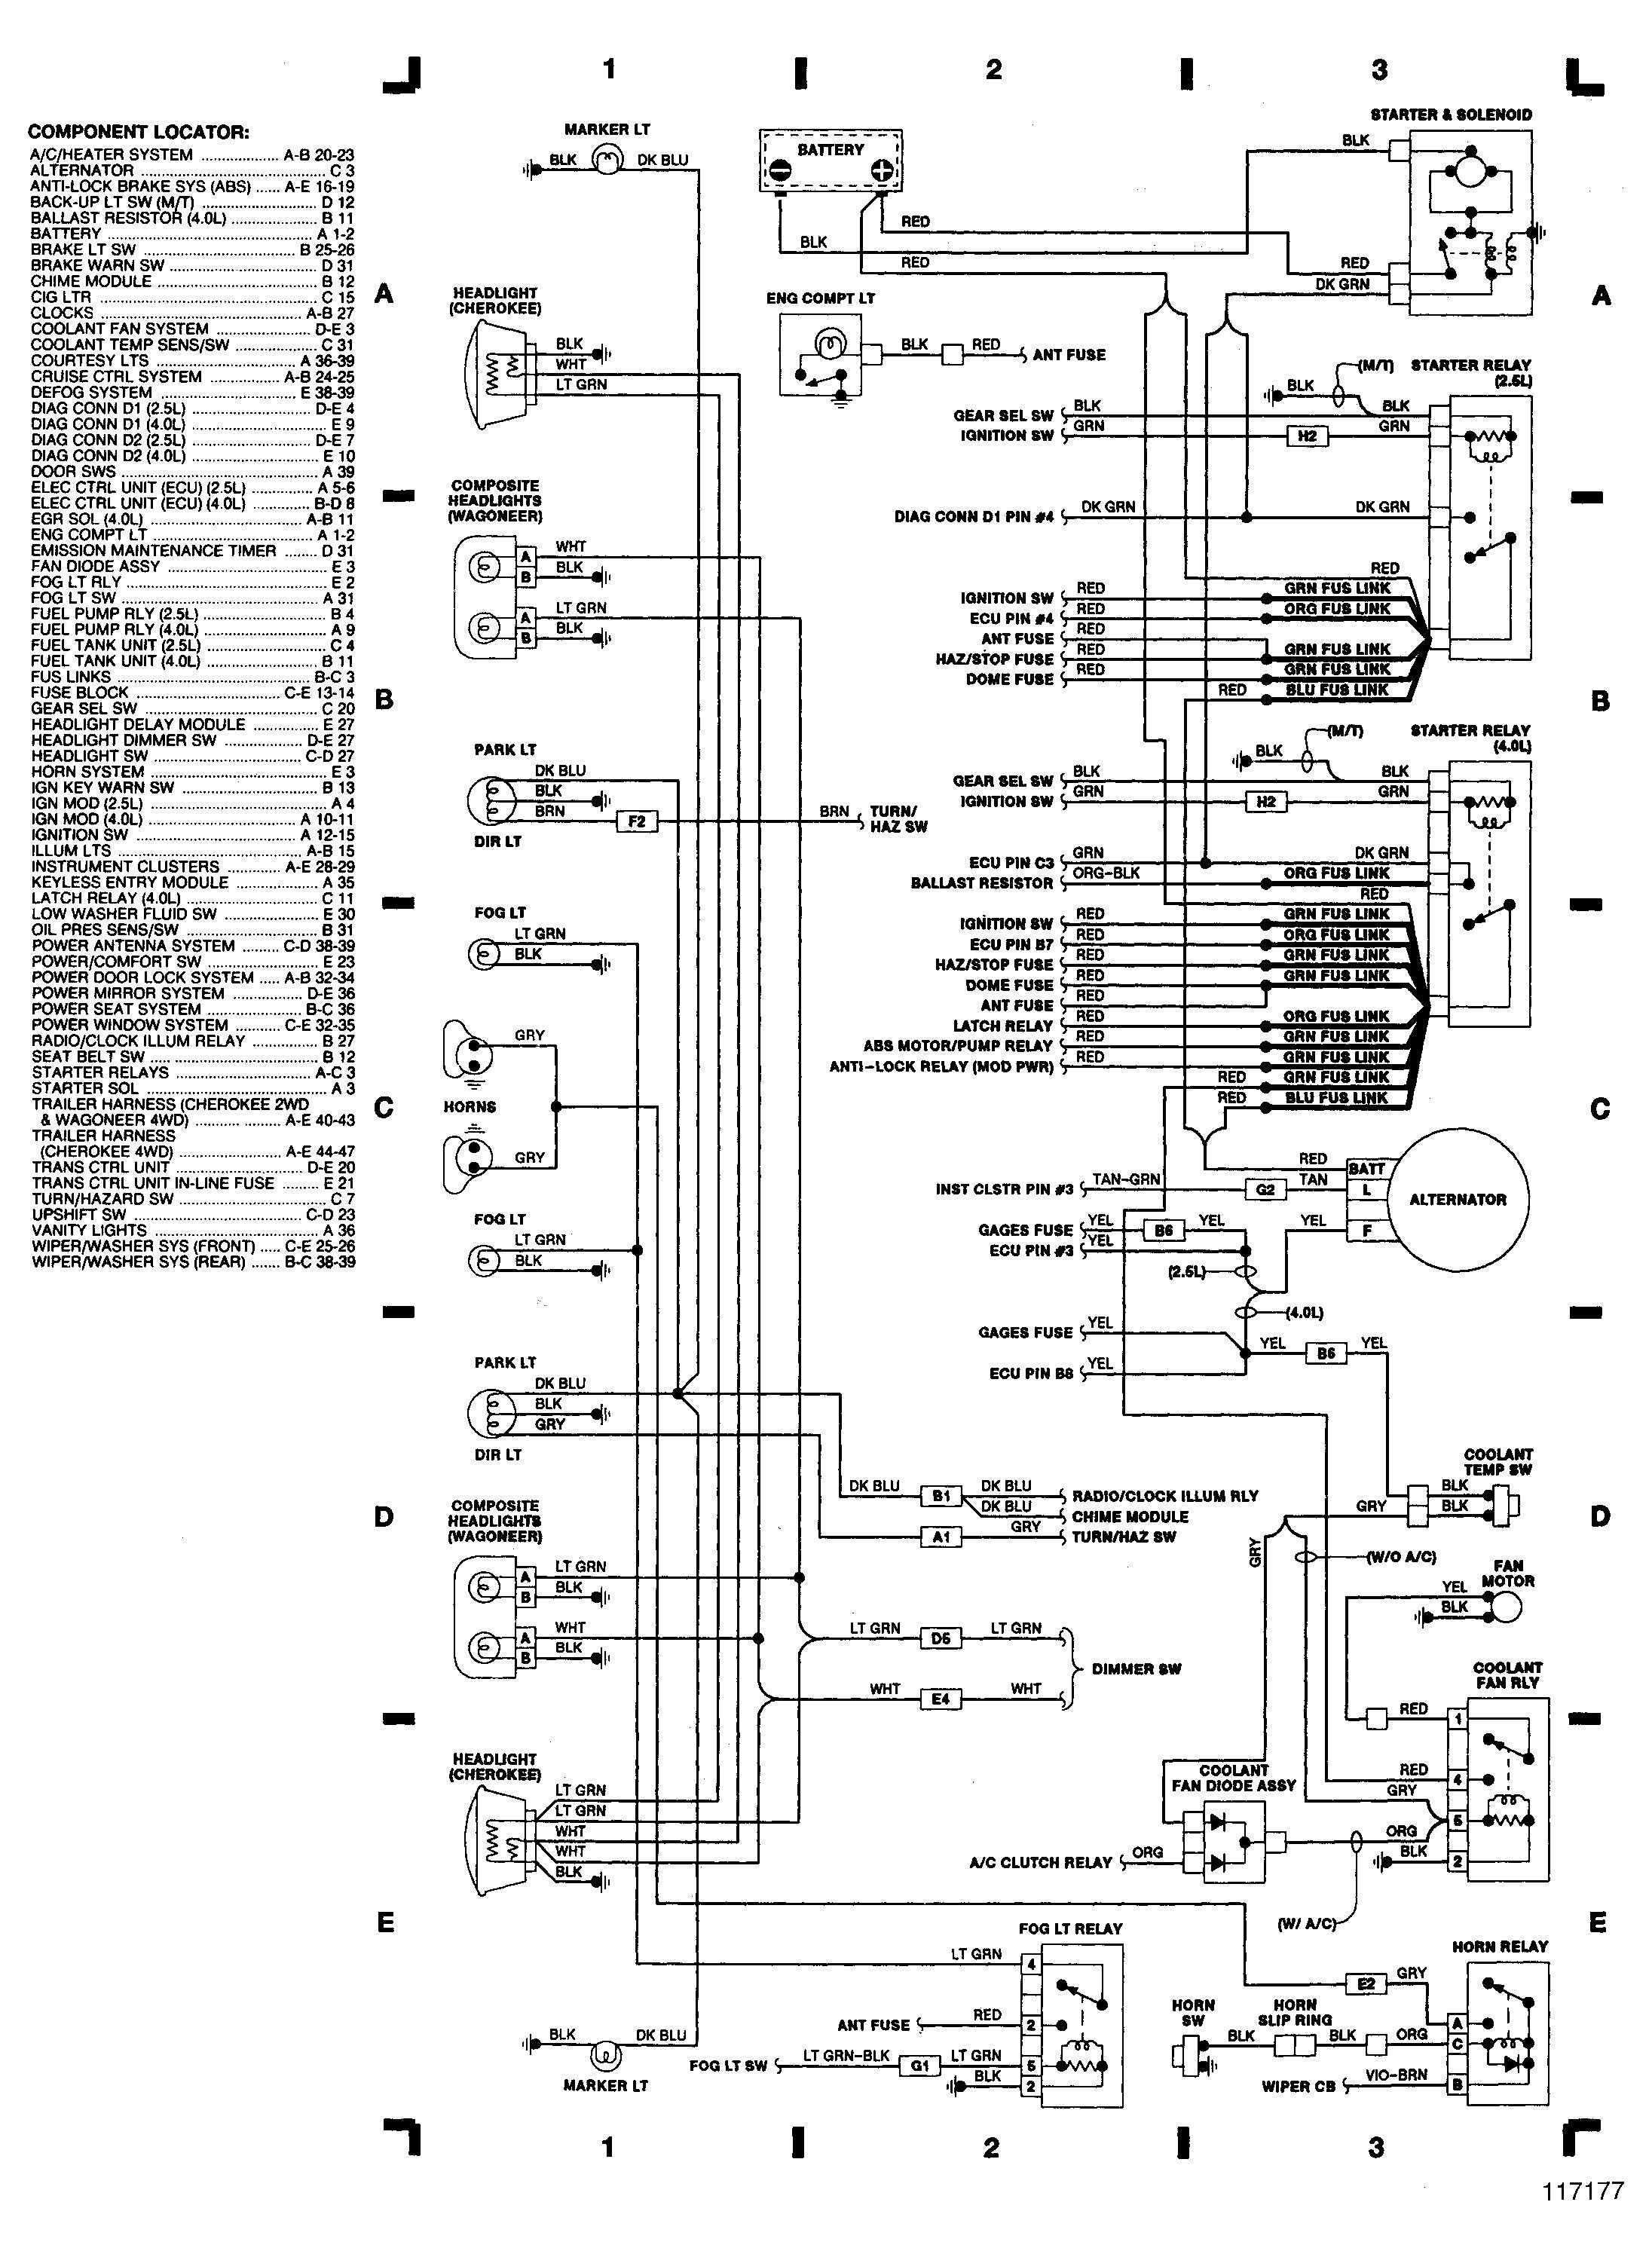 Awesome Wiring Diagram Jeep Grand Cherokee #diagrams #digramssample  #diagramimages #wiringdiagramsample #wiringdia… | Jeep grand cherokee, Jeep  cherokee, Jeep grand | 2005 Jeep Wiring Diagram |  | Pinterest